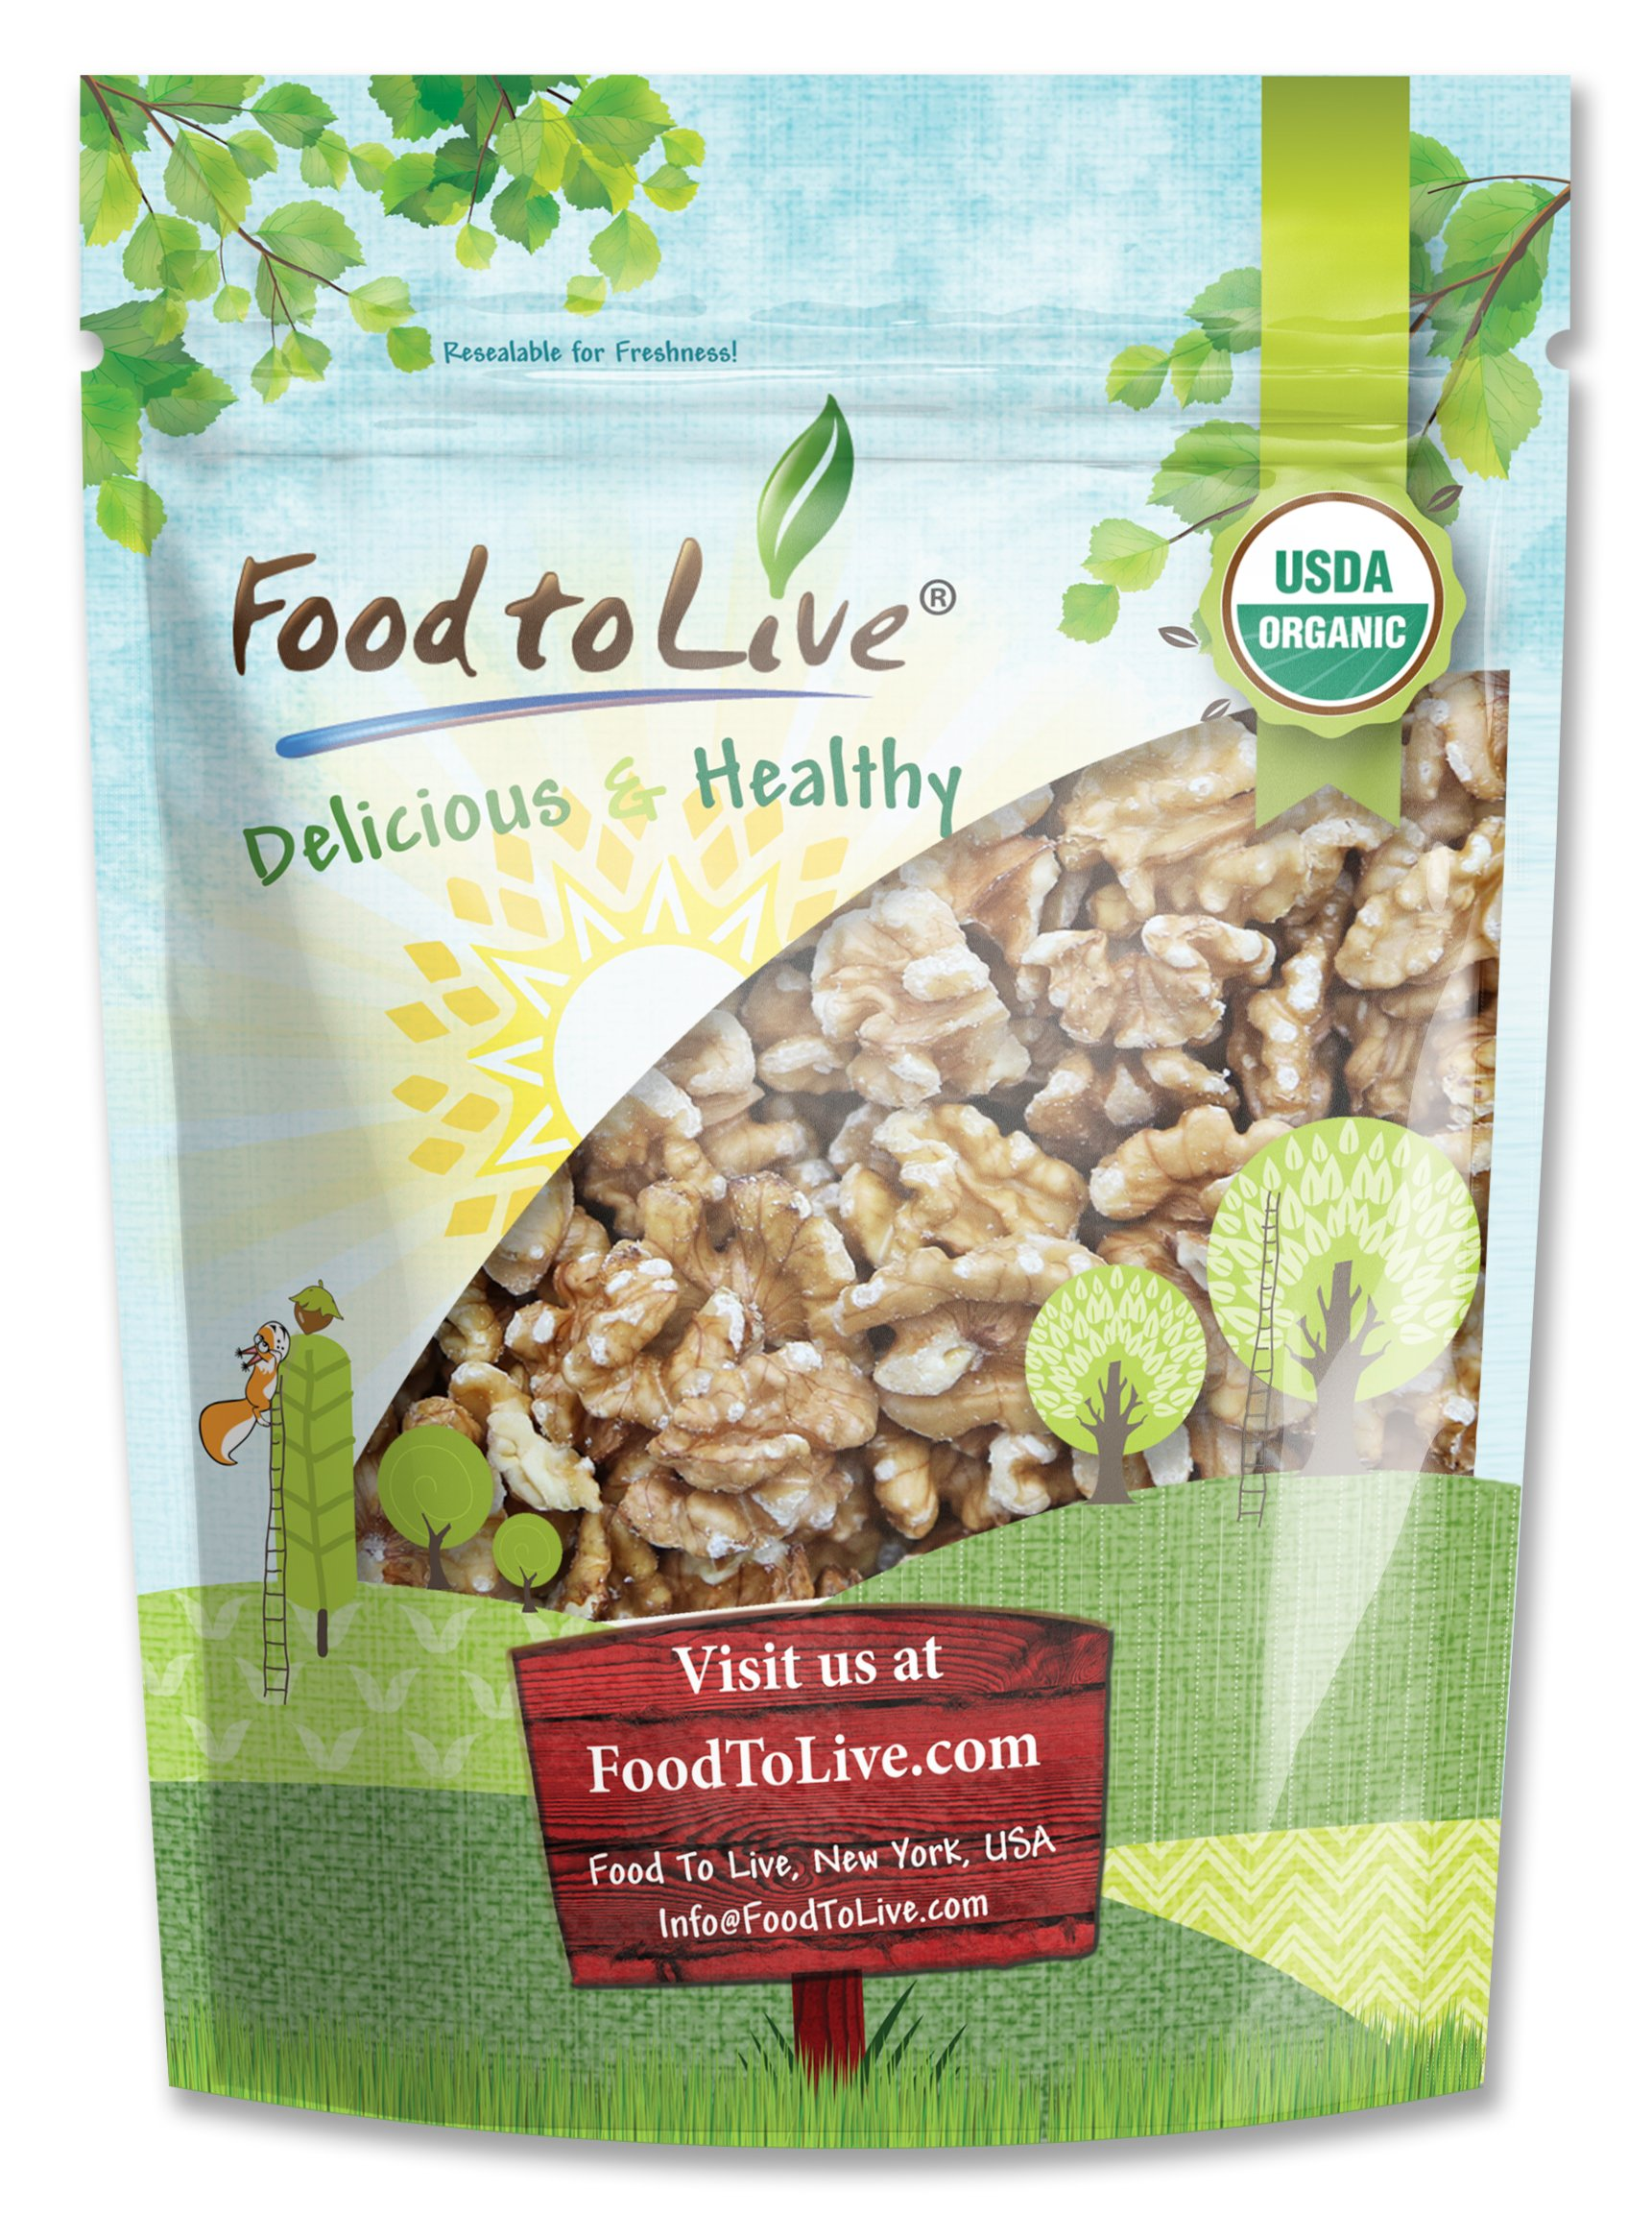 California Organic Walnuts by Food to Live (Raw, No Shell, Kosher, Natural, Bulk) — 8 Ounces